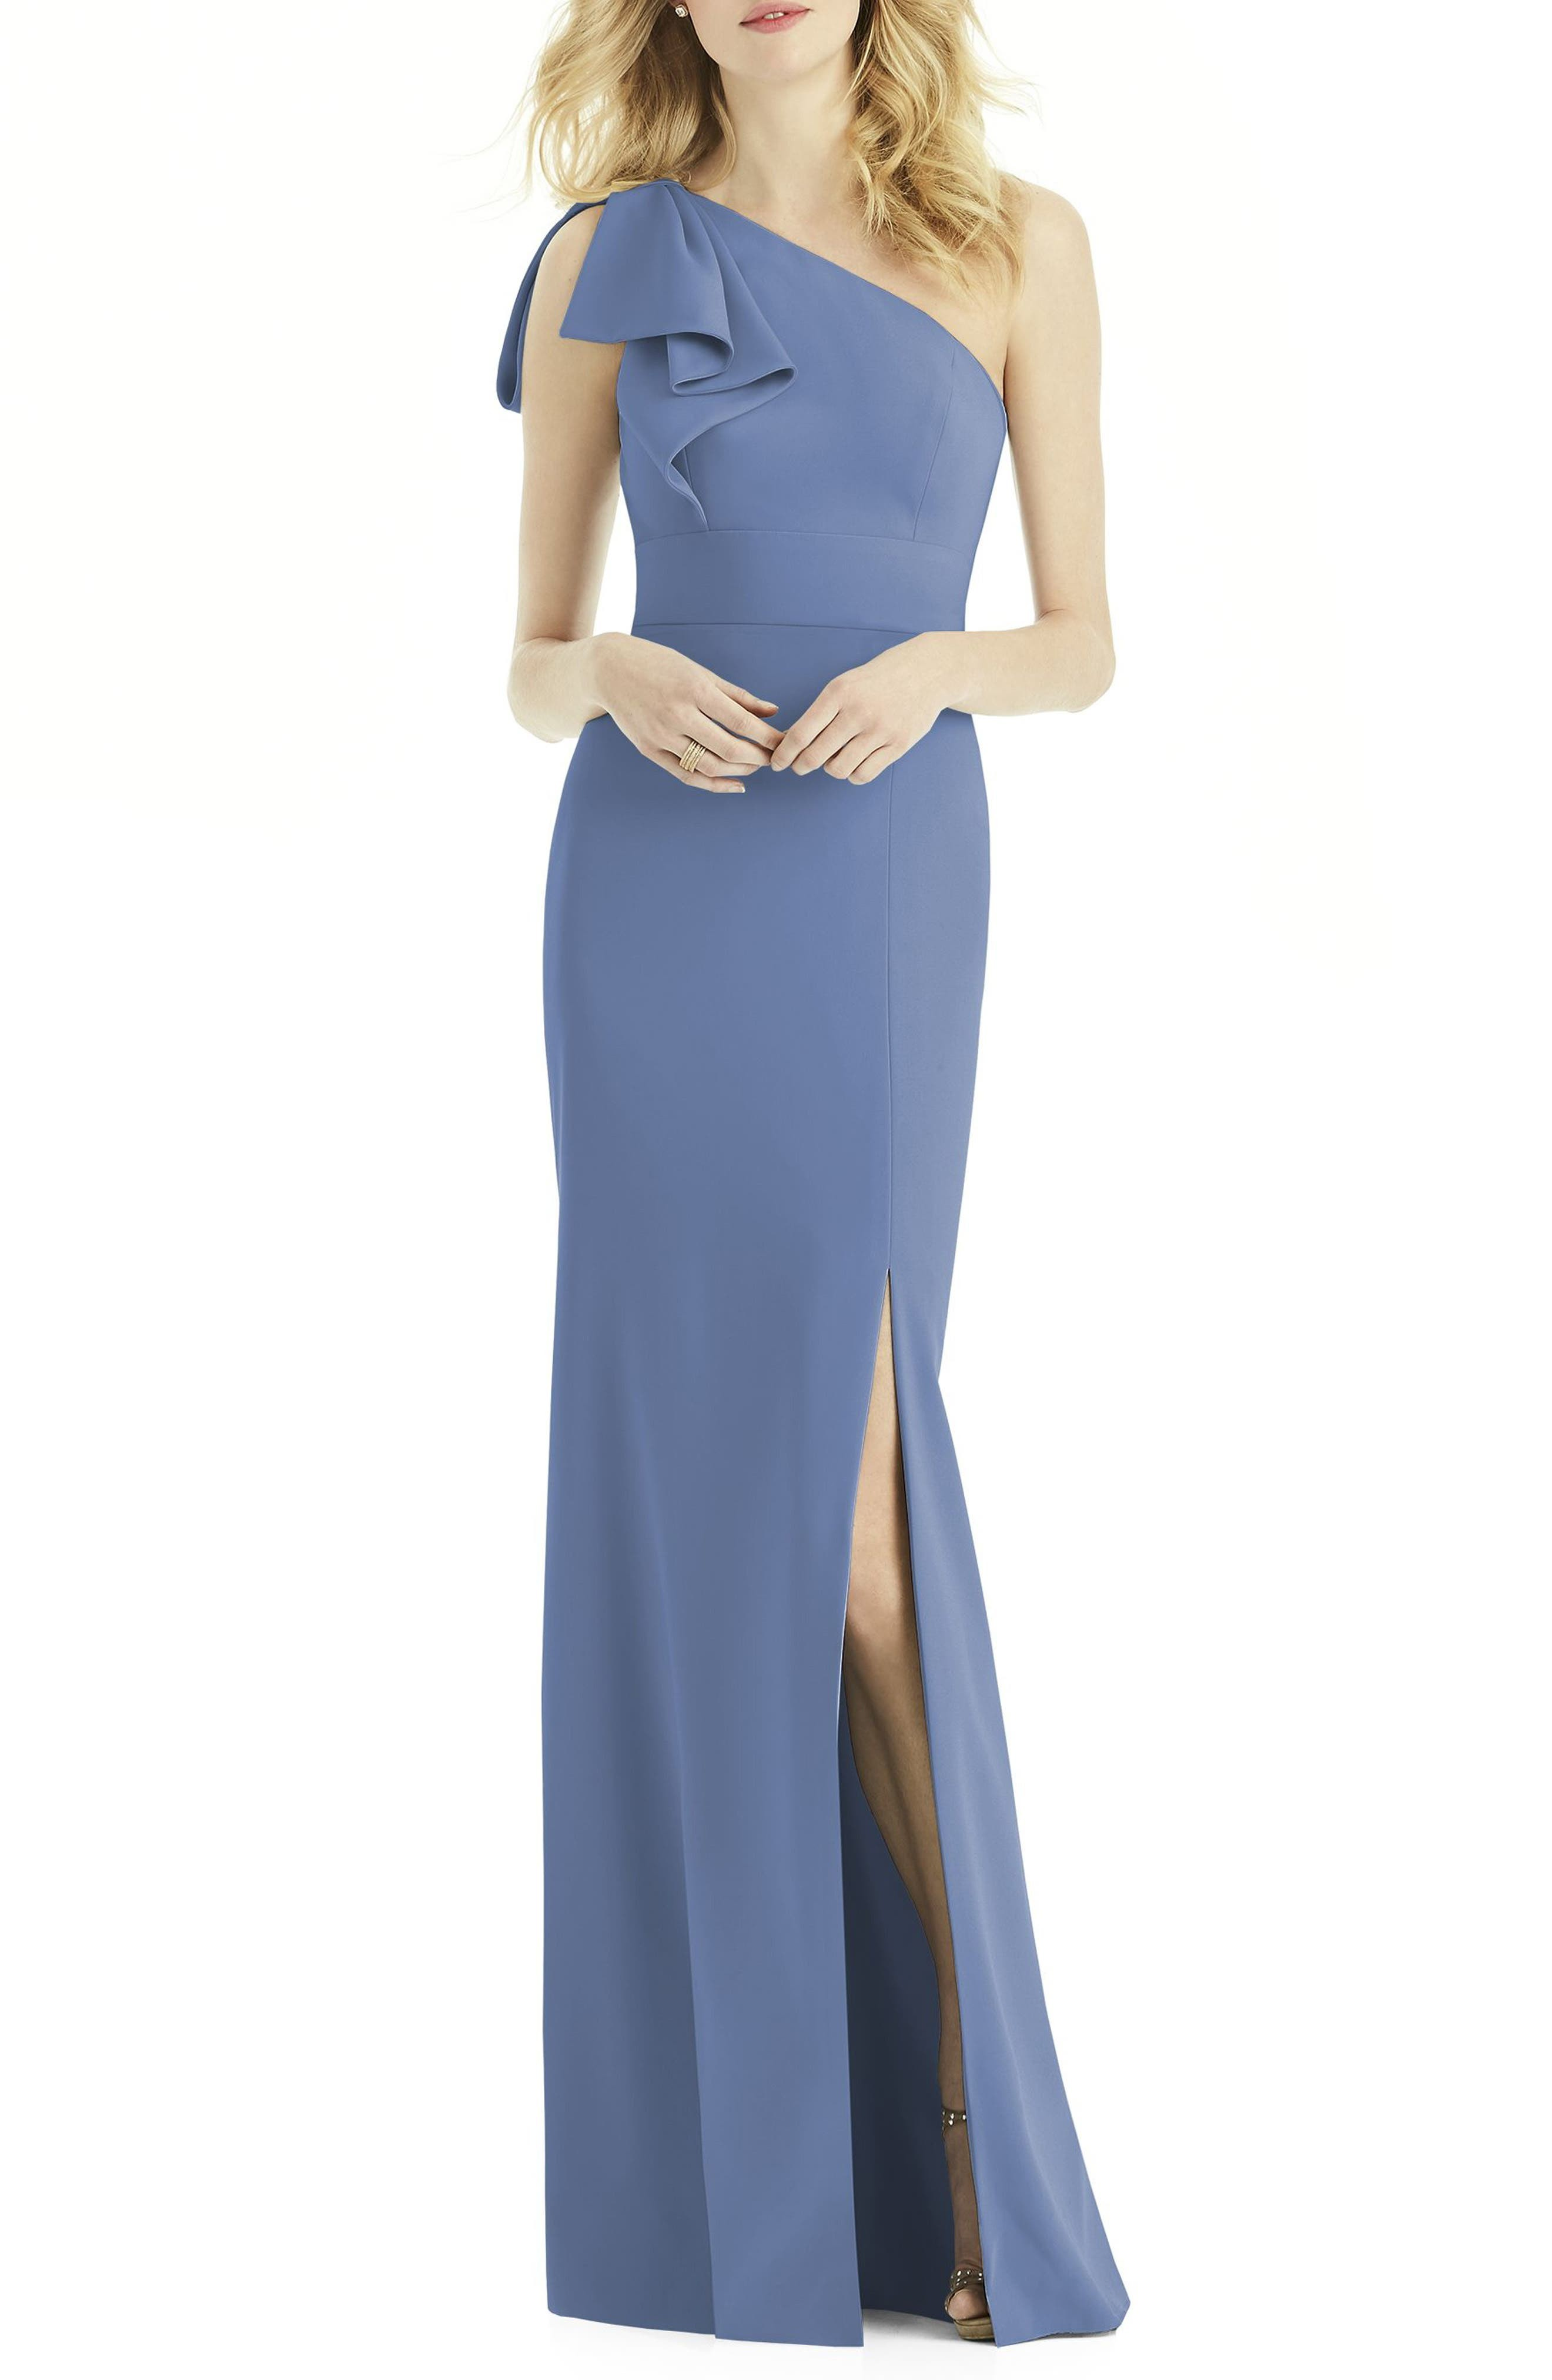 Stunning Dresses For A Winter Wedding Guest Pictures Inspiration ...